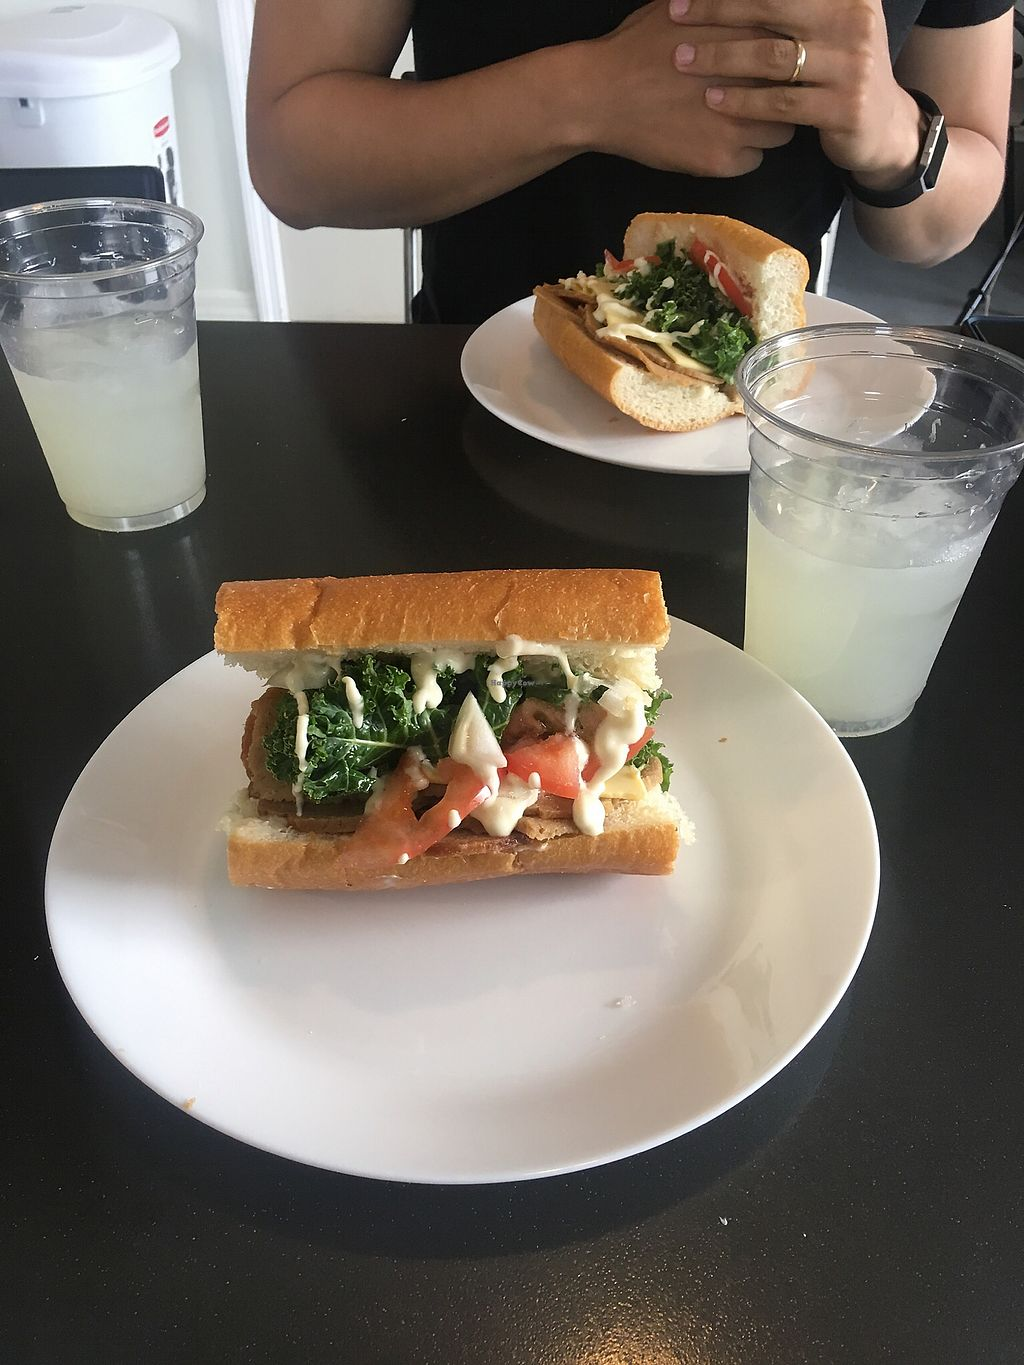 """Photo of Wildflower Vegan Co. Featuring Burnamup  by <a href=""""/members/profile/ml23x"""">ml23x</a> <br/>Sammies <br/> February 2, 2018  - <a href='/contact/abuse/image/109093/353941'>Report</a>"""